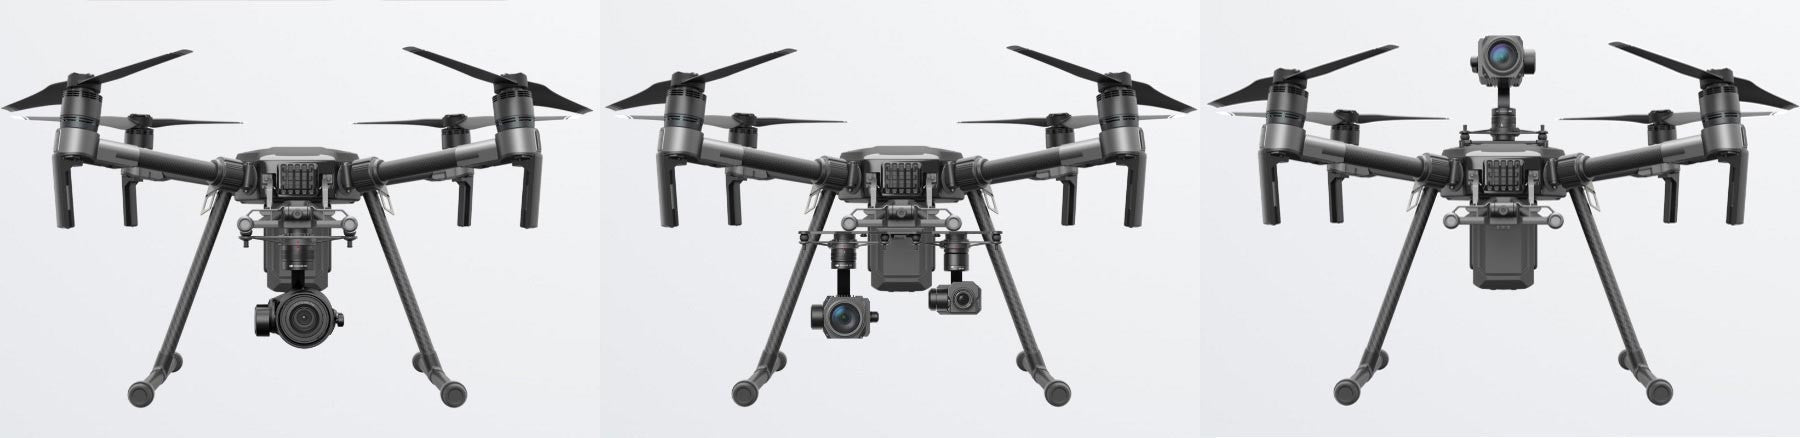 DJI Matrice 200 Series Variations